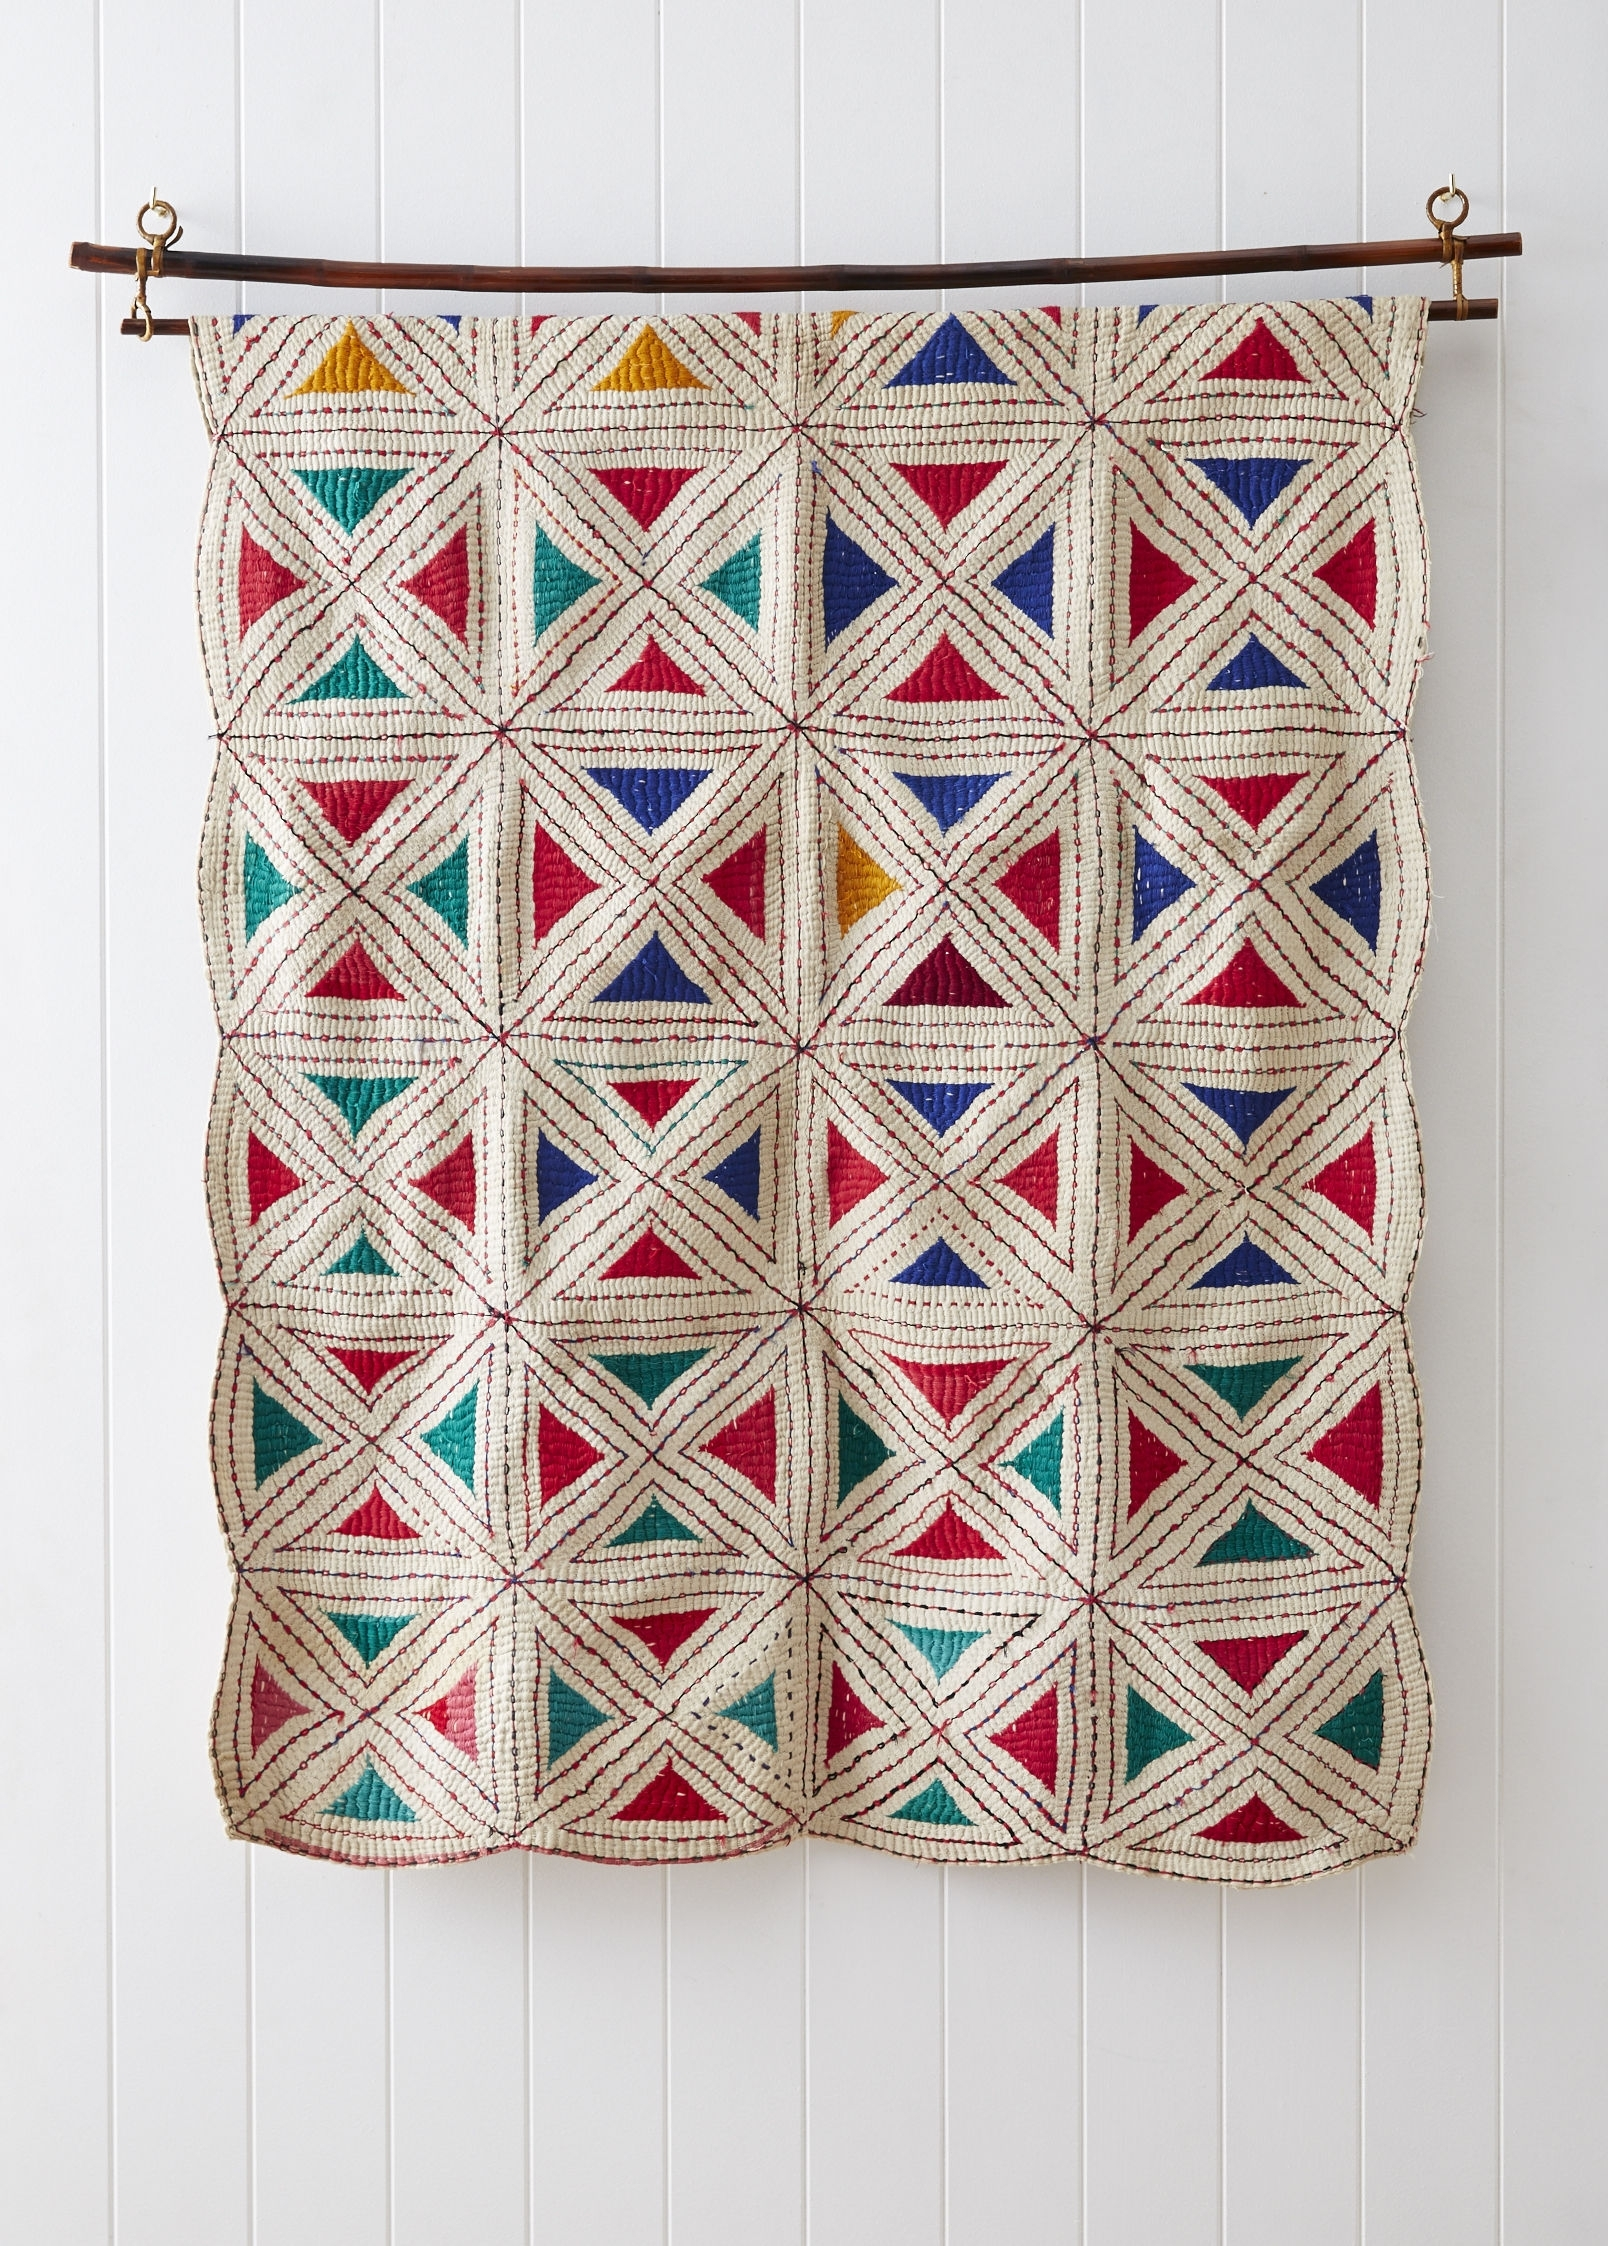 Kantha Stitched Wall Hanging for Most Popular Hanging Textile Wall Art